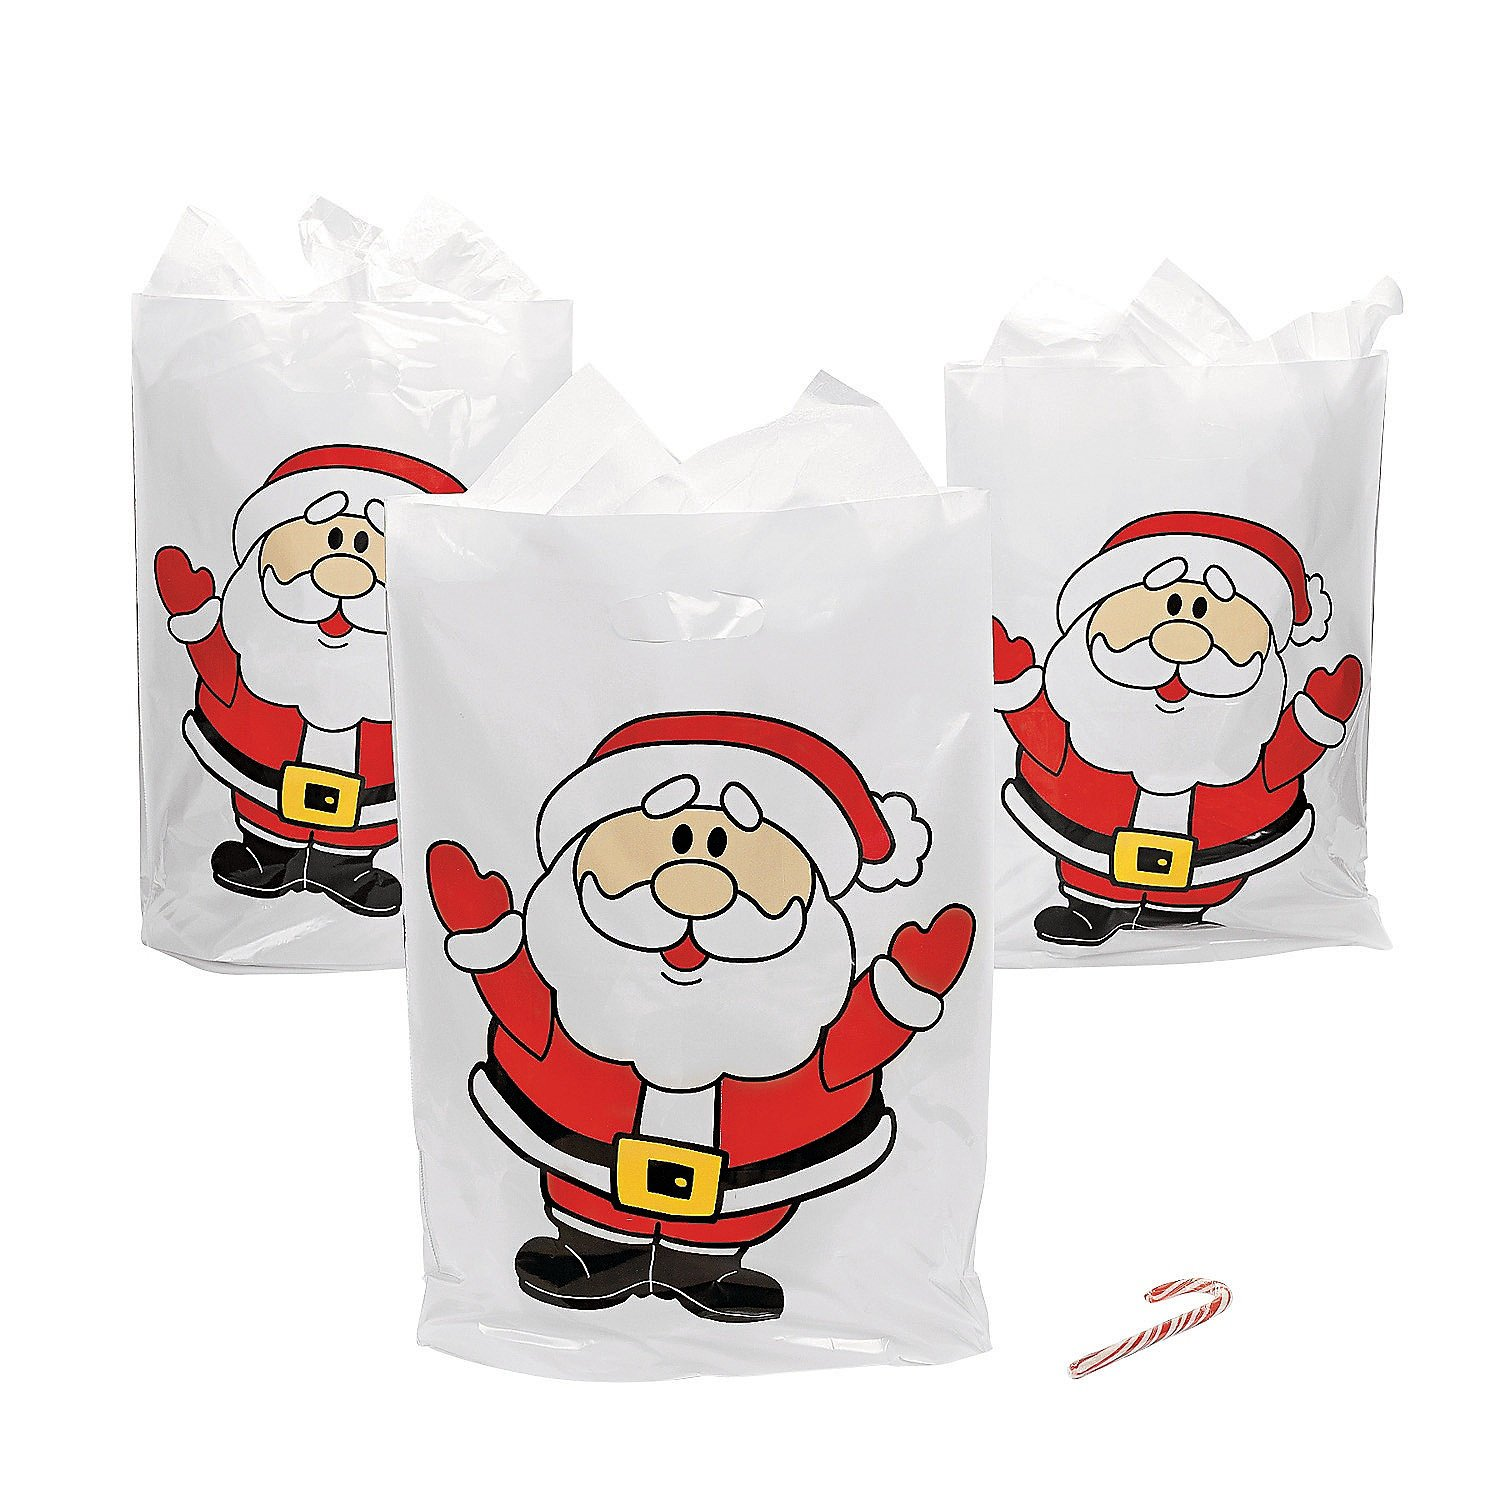 Christmas Party Supplies /& Decorations /& Party Supplies SG/_B07J5TW3XM/_US 100 Count Fun Express Santa Bags